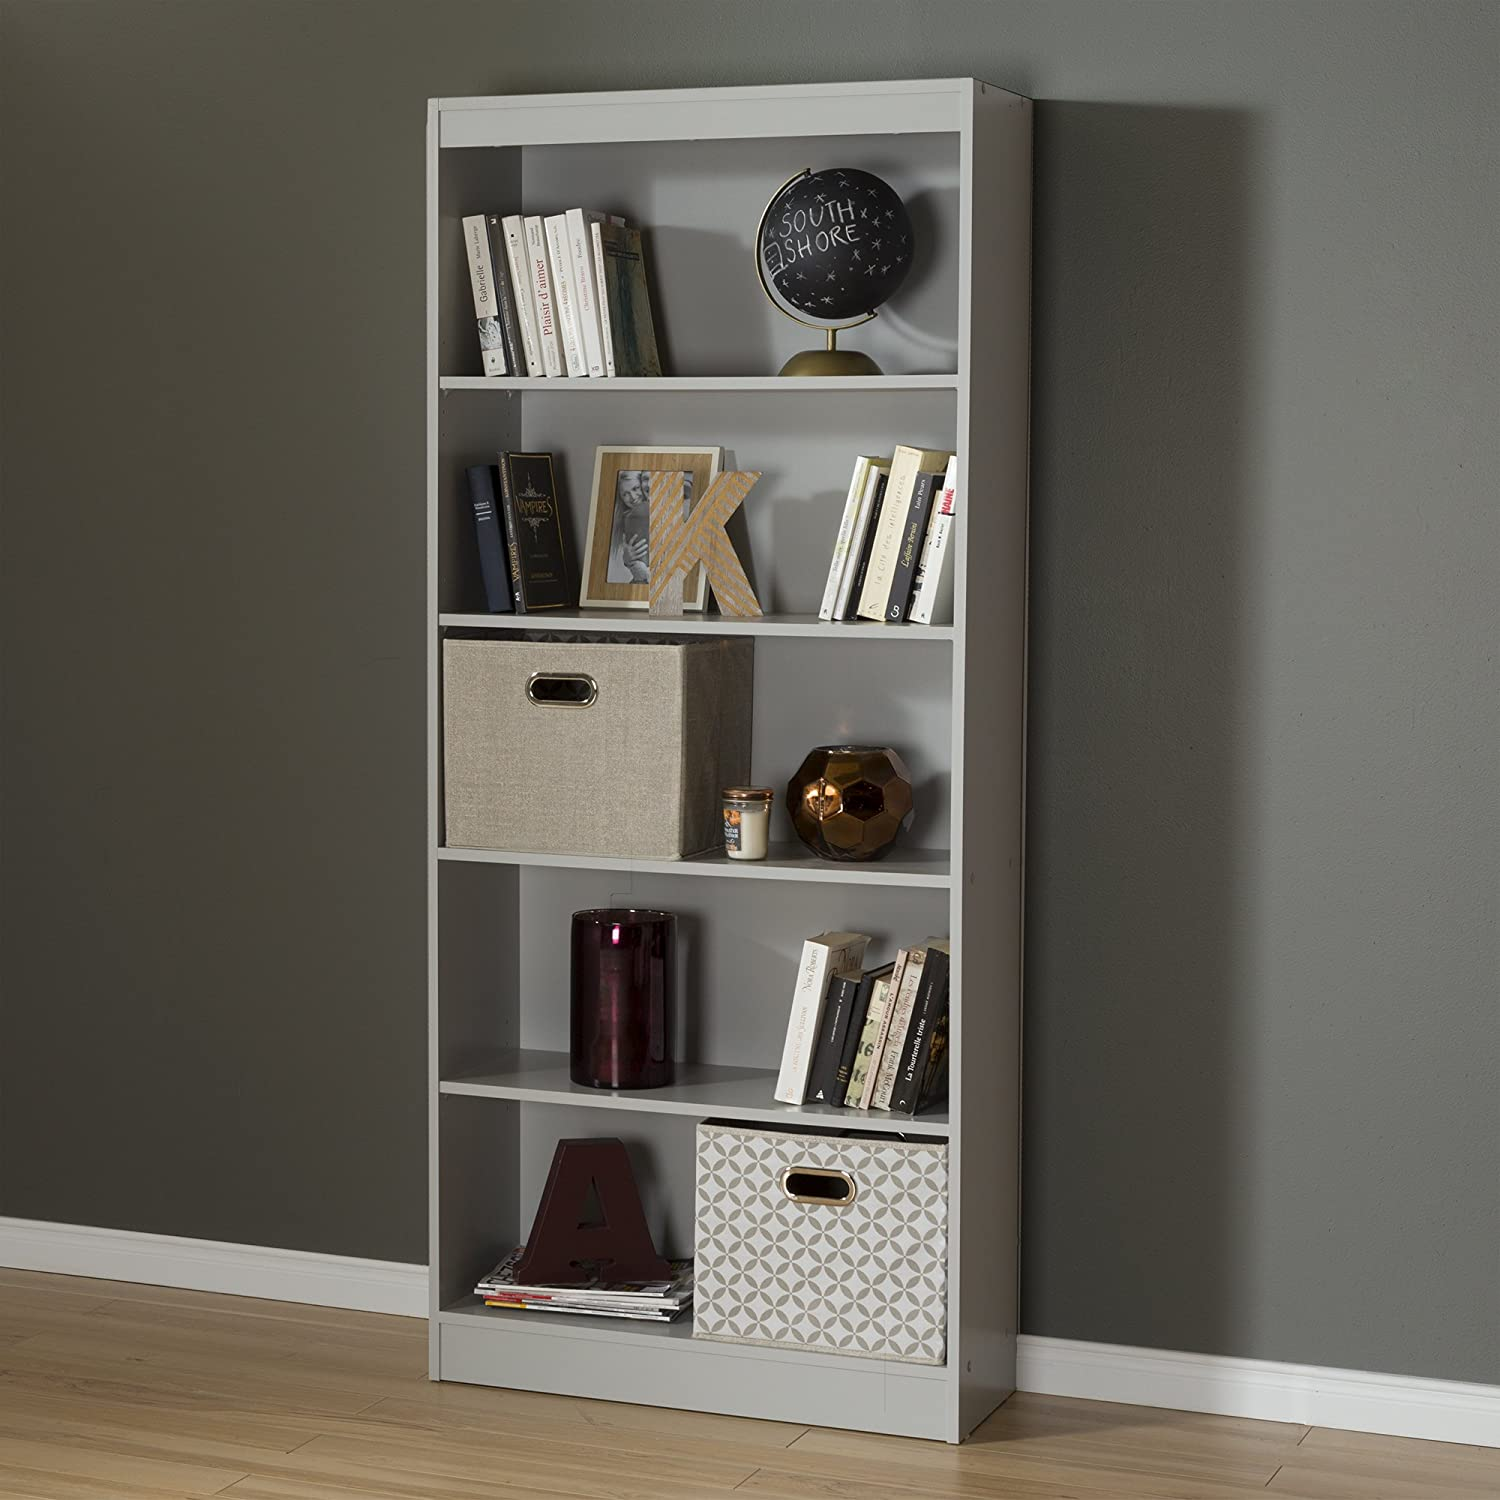 bookcase amazon cherry shelf home royal kitchen shore axess ca south furniture dp